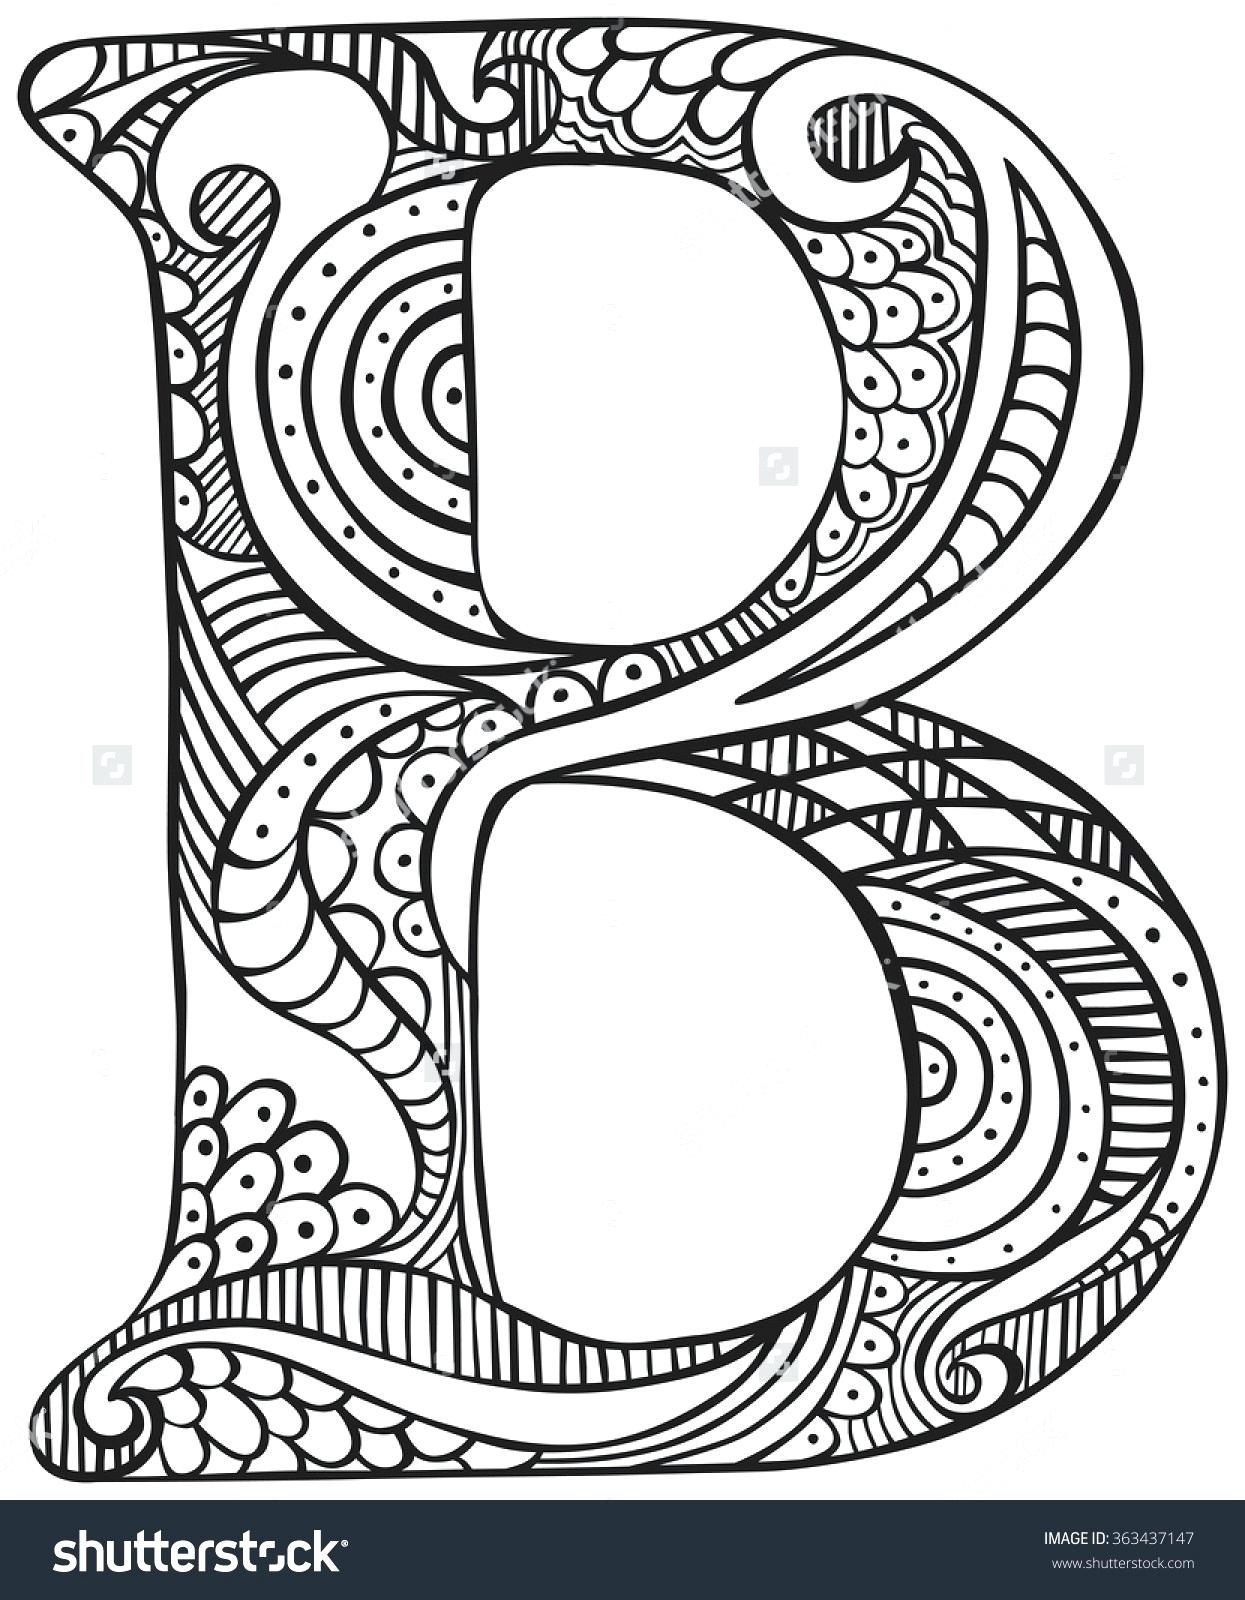 Letter B Coloring Pages Awesome Letter B Coloring Sheet Colin Bookman